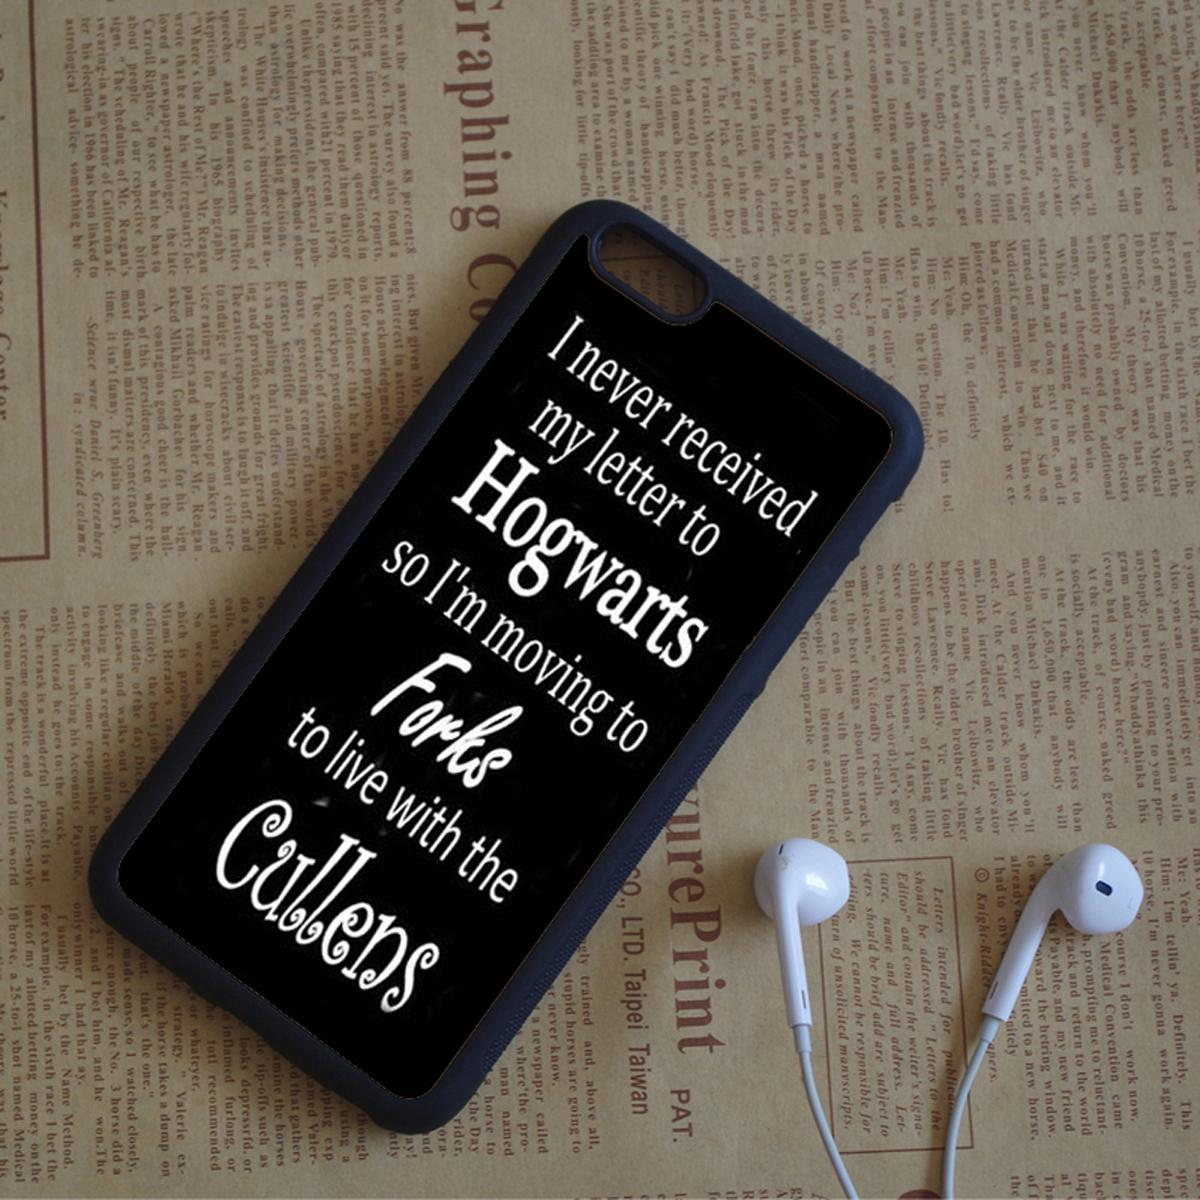 Twilight Quotes | Harry Potter Twilight Quotes Phone Cases For Iphone 6 6s Plus 7 7 Plus 5 5s 5c Se 4s Back Cover Cute Cell Phone Cases Cell Phone Cases Wholesale From